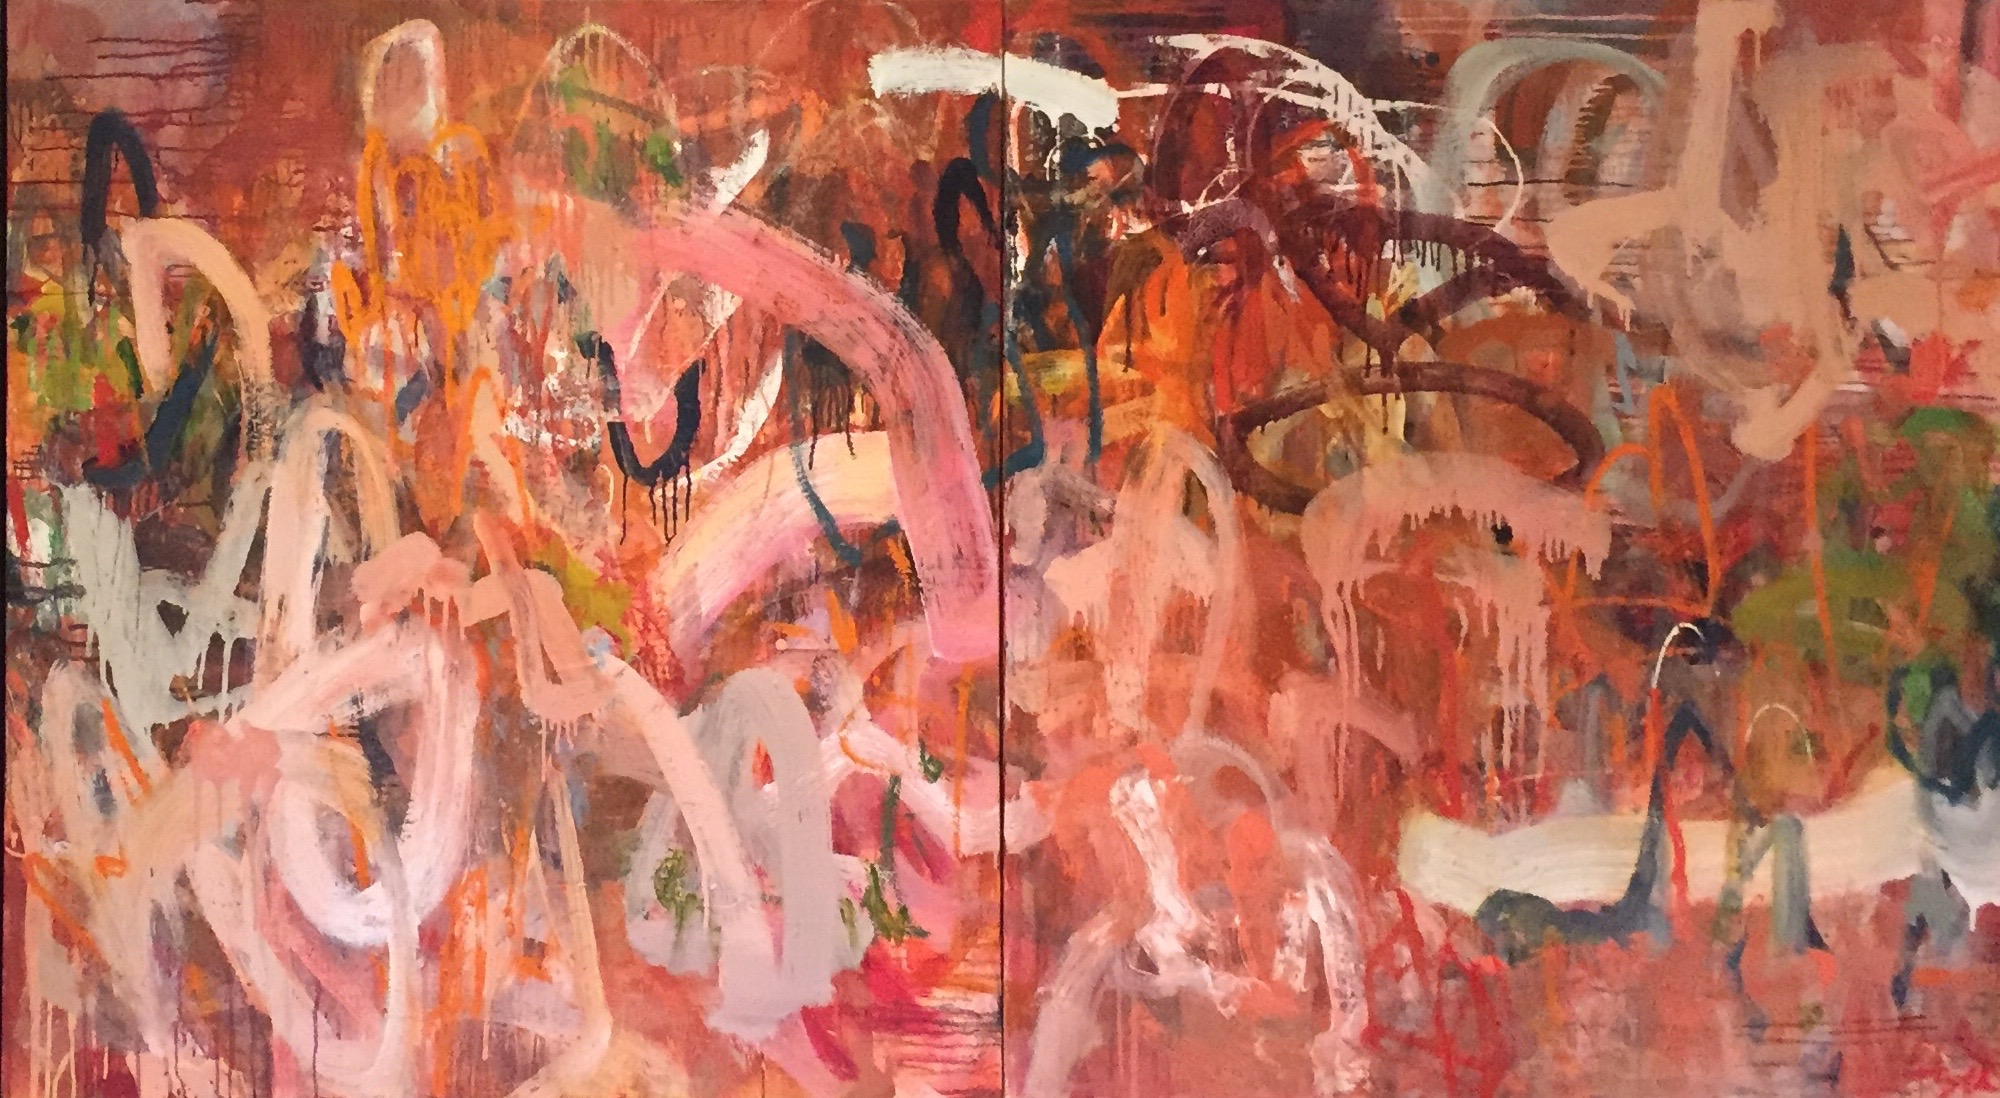 PRETTY IN PINK 40 x 72 diptych oil on canvas SOLD